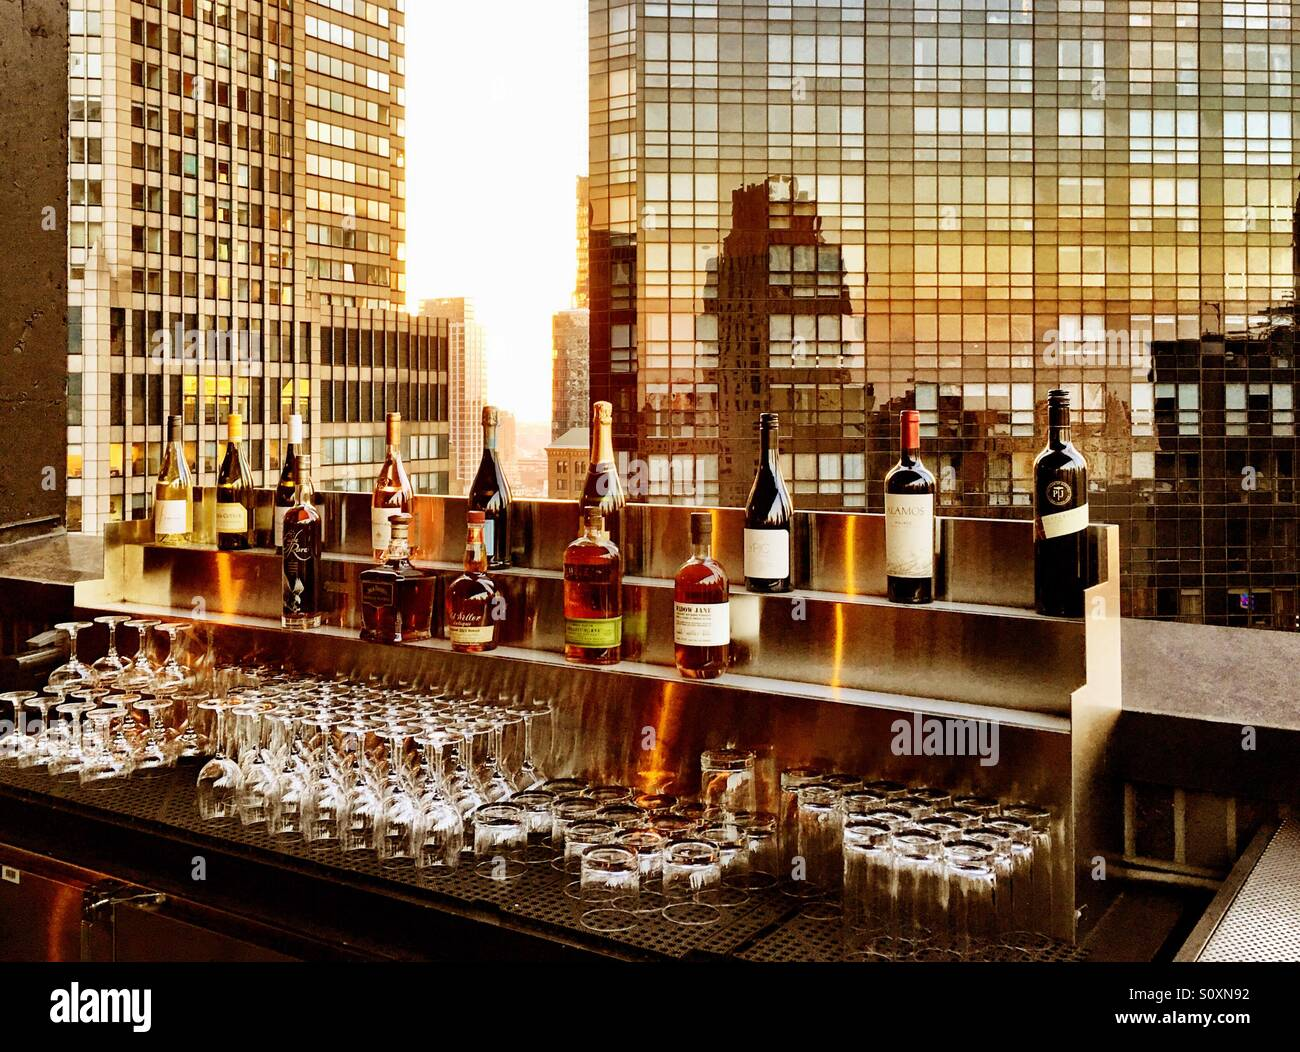 Rooftop Bar in Manhattan, New York City. - Stock Image